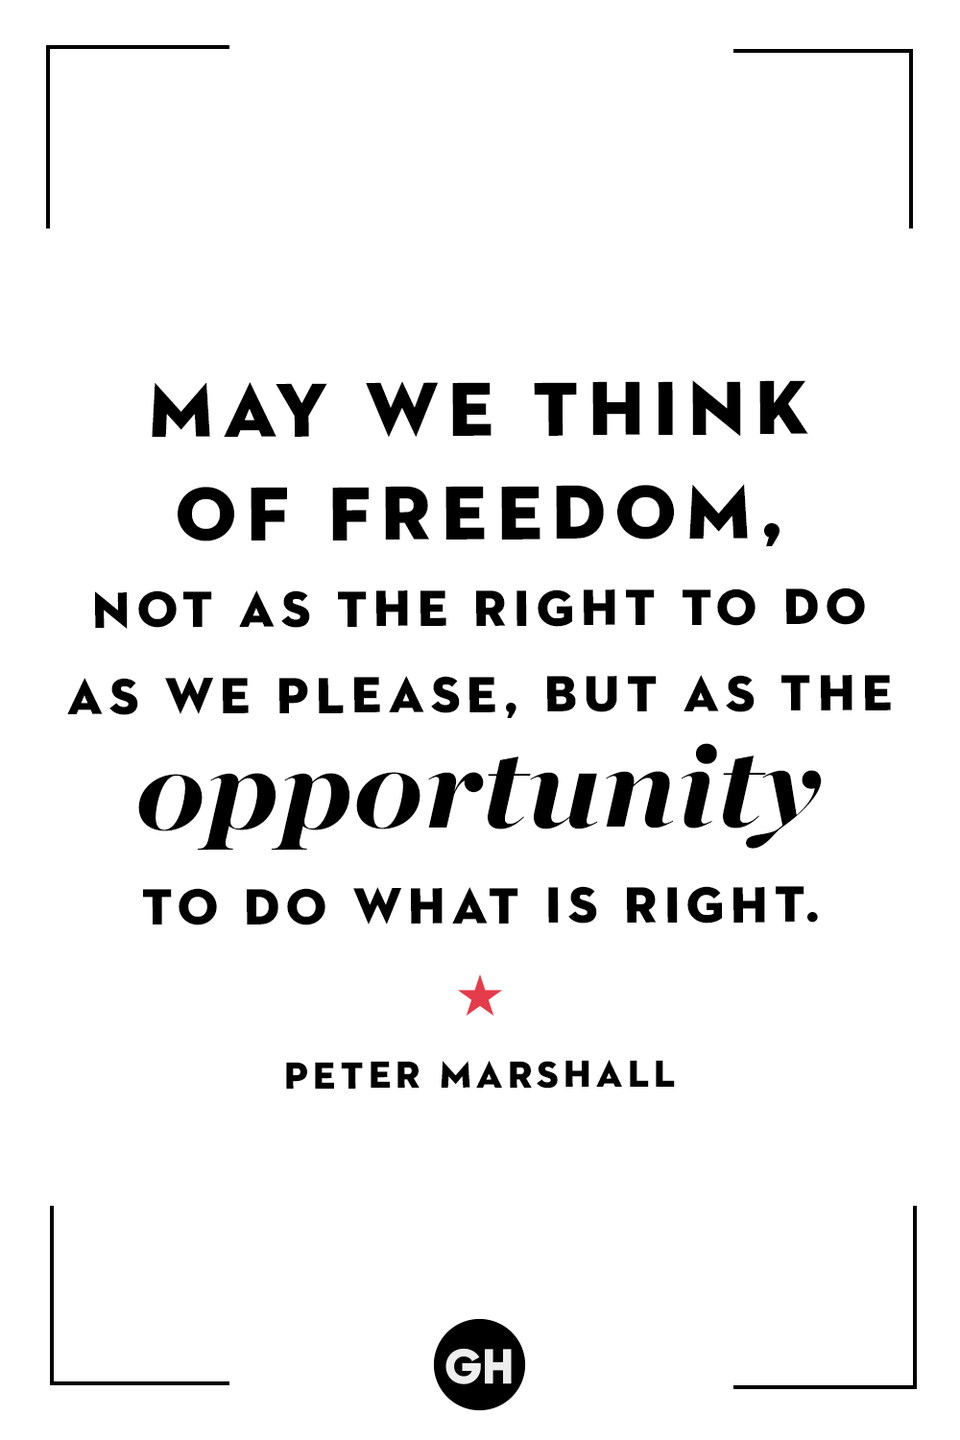 <p>May we think of freedom, not as the right to do as we please, but as the opportunity to do what is right.</p>